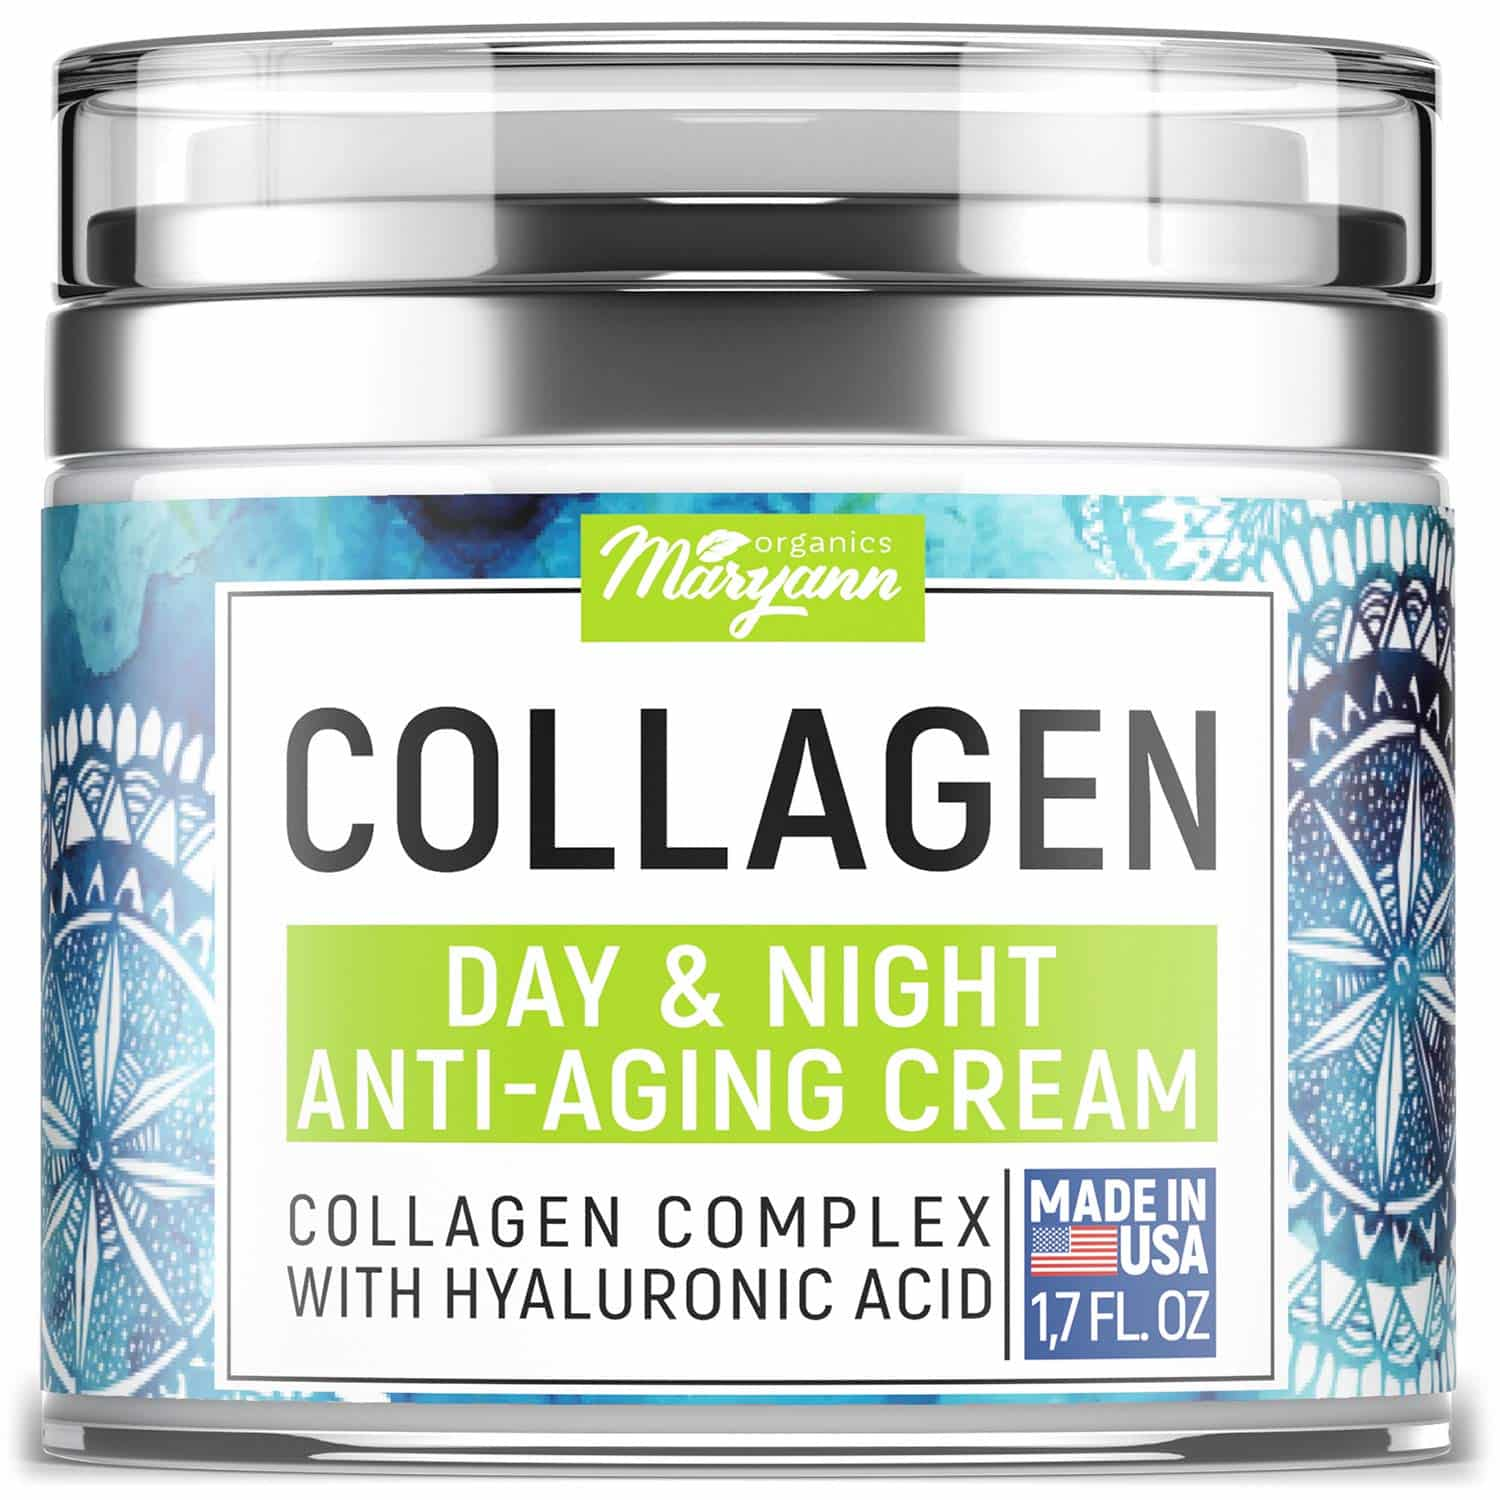 MARYANN Organics Collagen Anti-Aging Cream